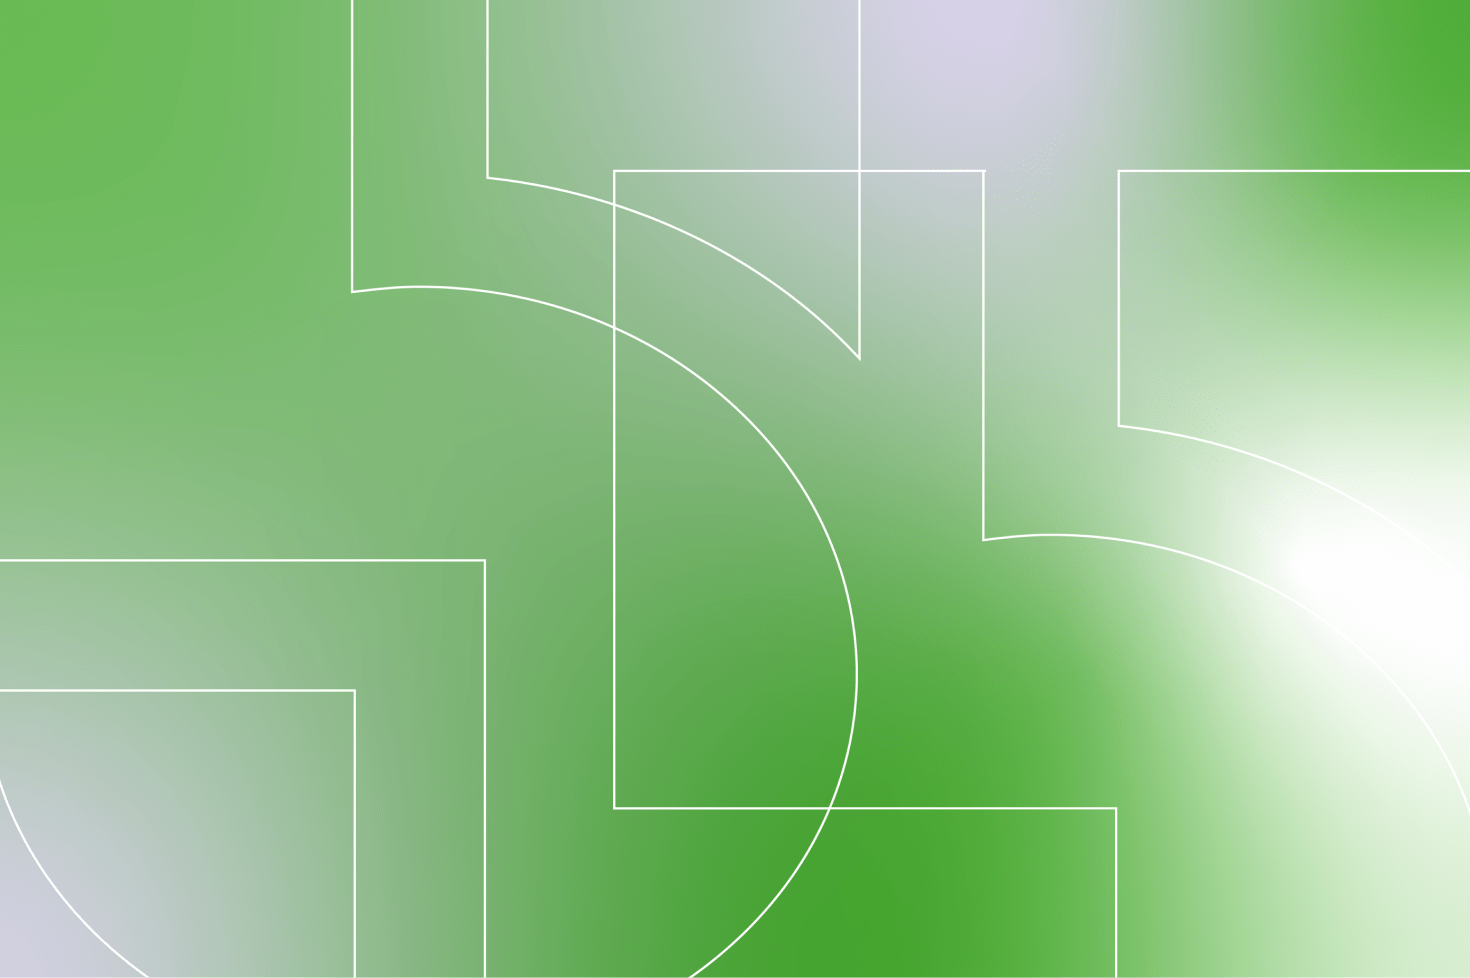 5four digital outline trademark on the green and white background